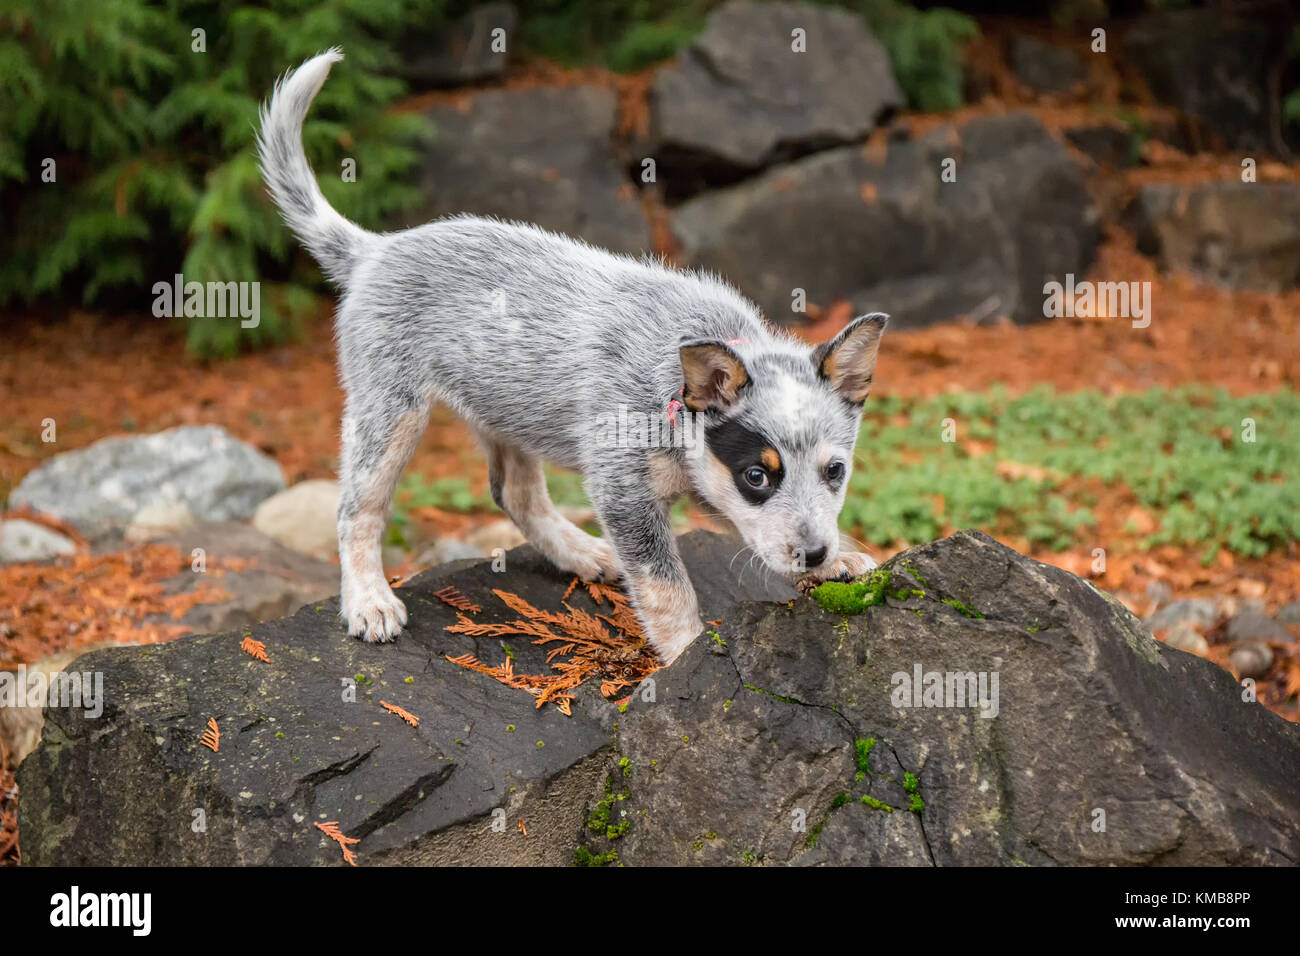 Small Dog Sniffing Tree